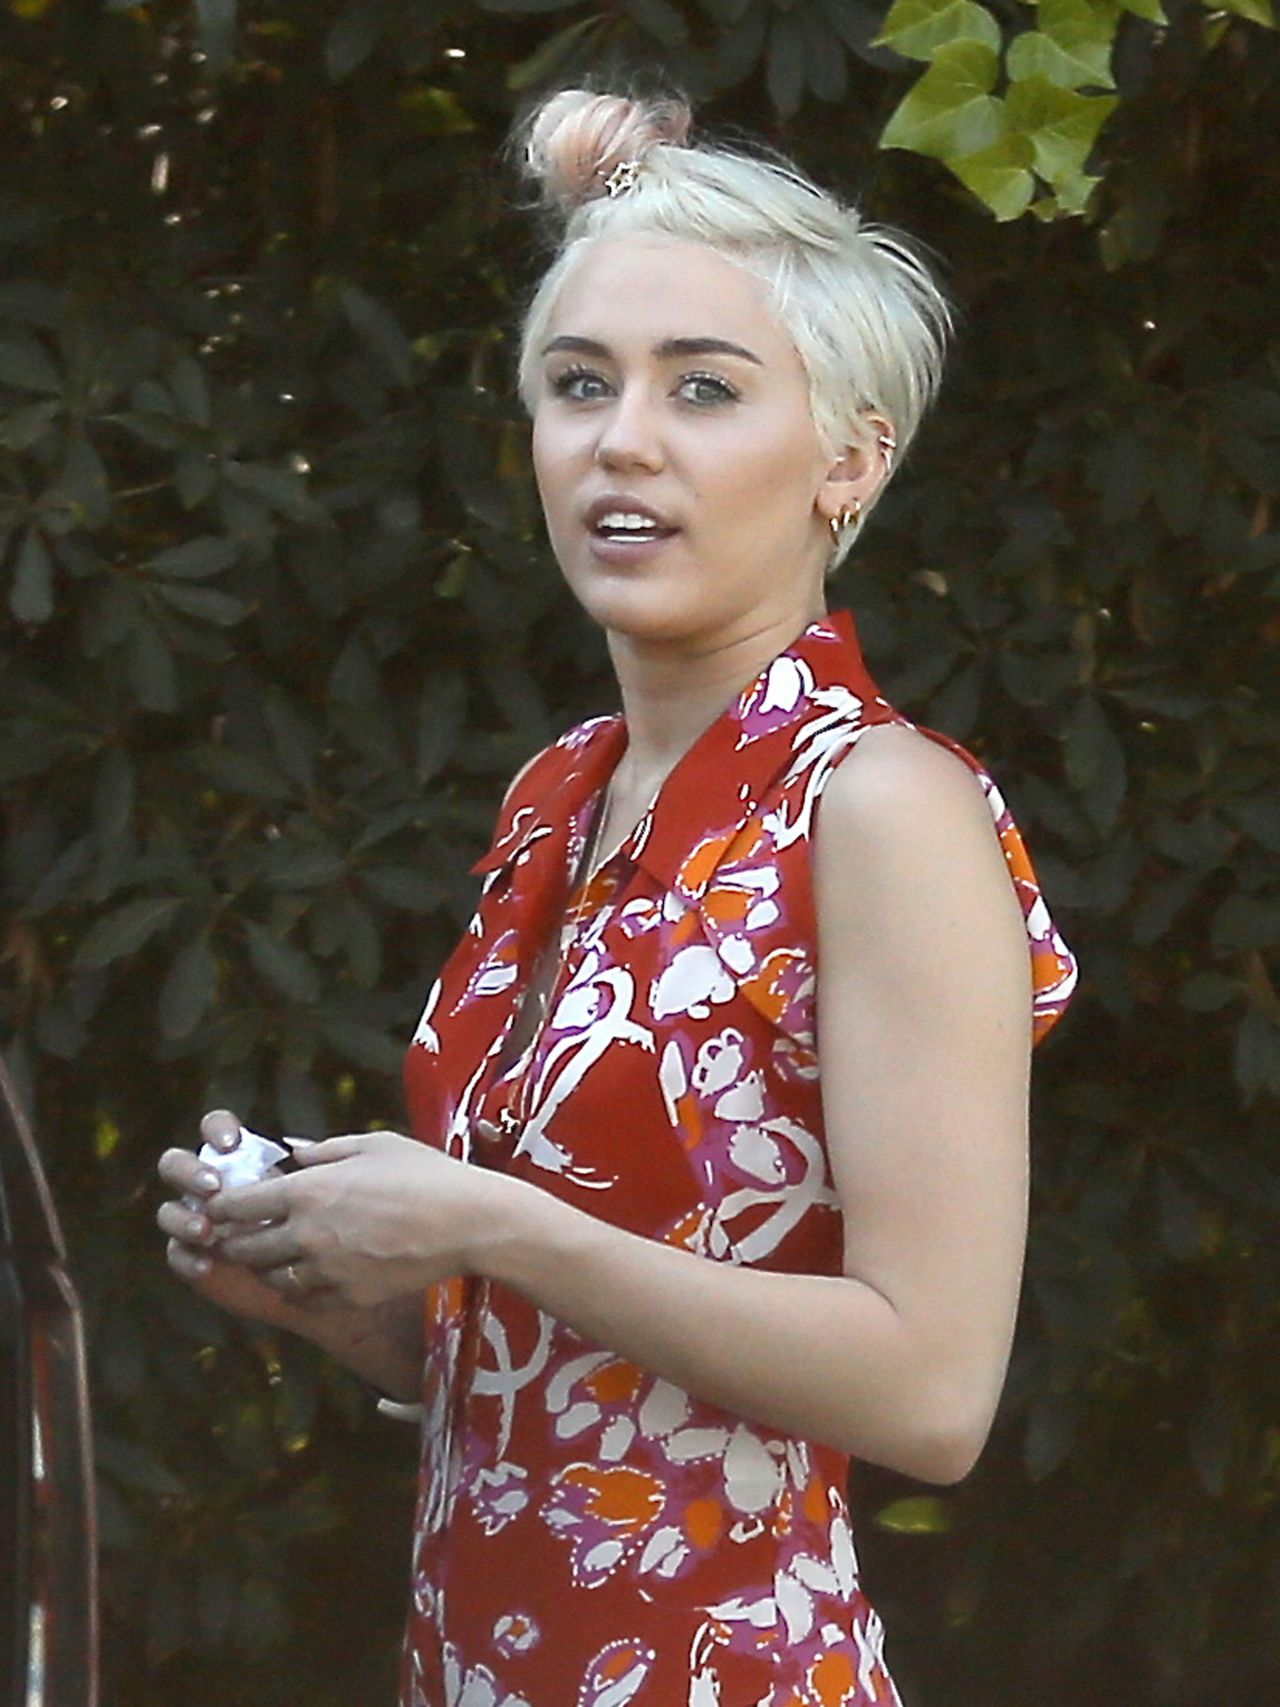 miley cyrus - out shopping in studio city